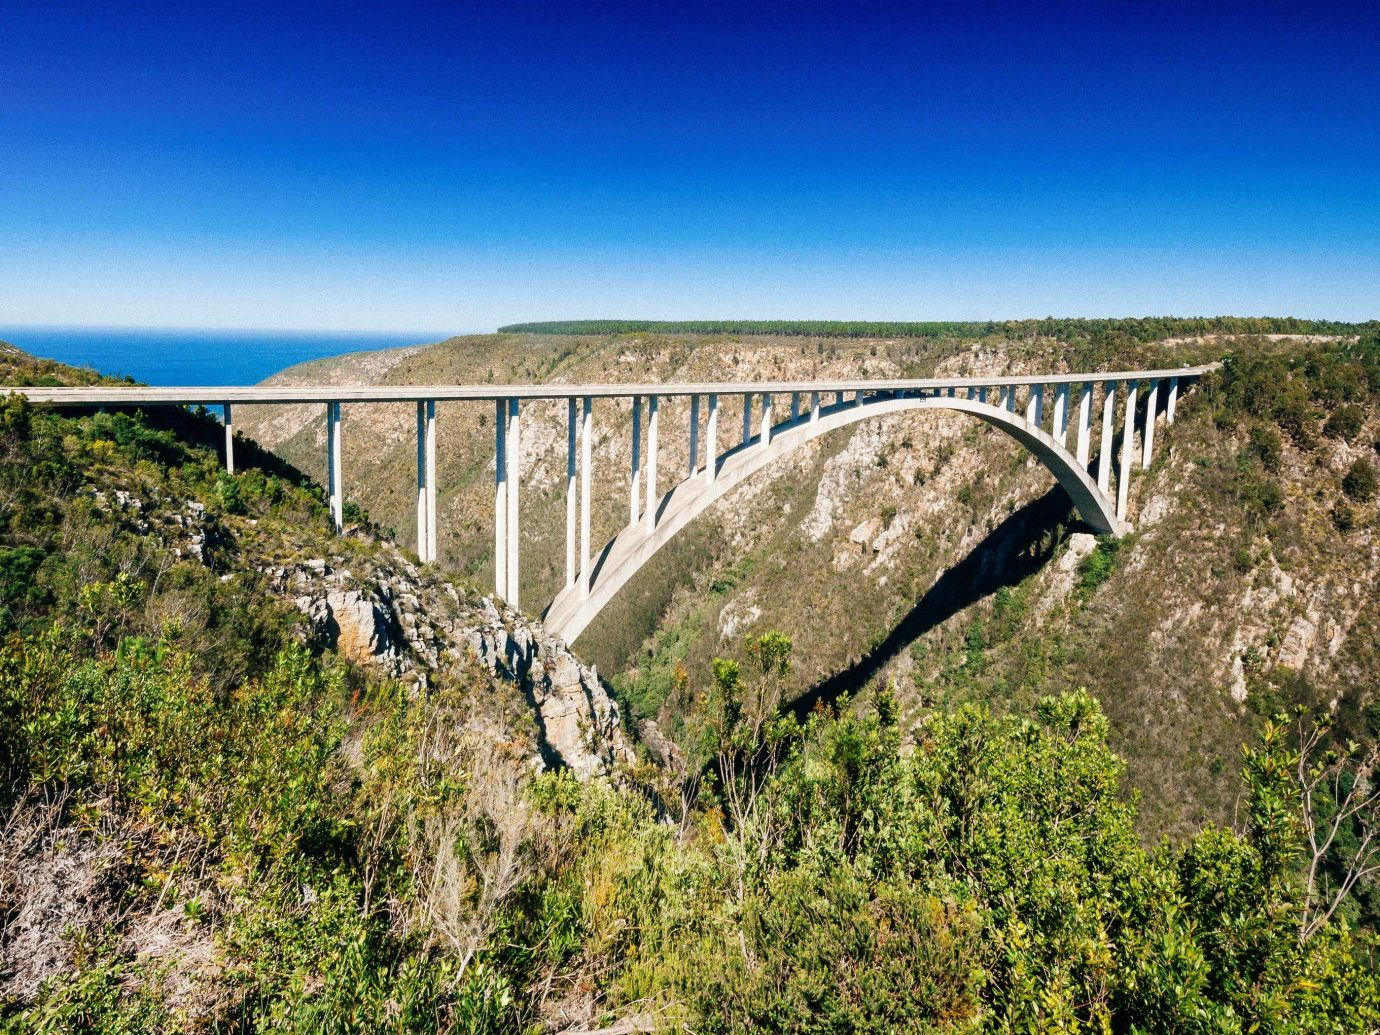 Bloukrans Bungy bridge viaduct arch bridge sky aqueduct concrete bridge escarpment reservoir fixed link devil's bridge landscape formation tree beam bridge national park